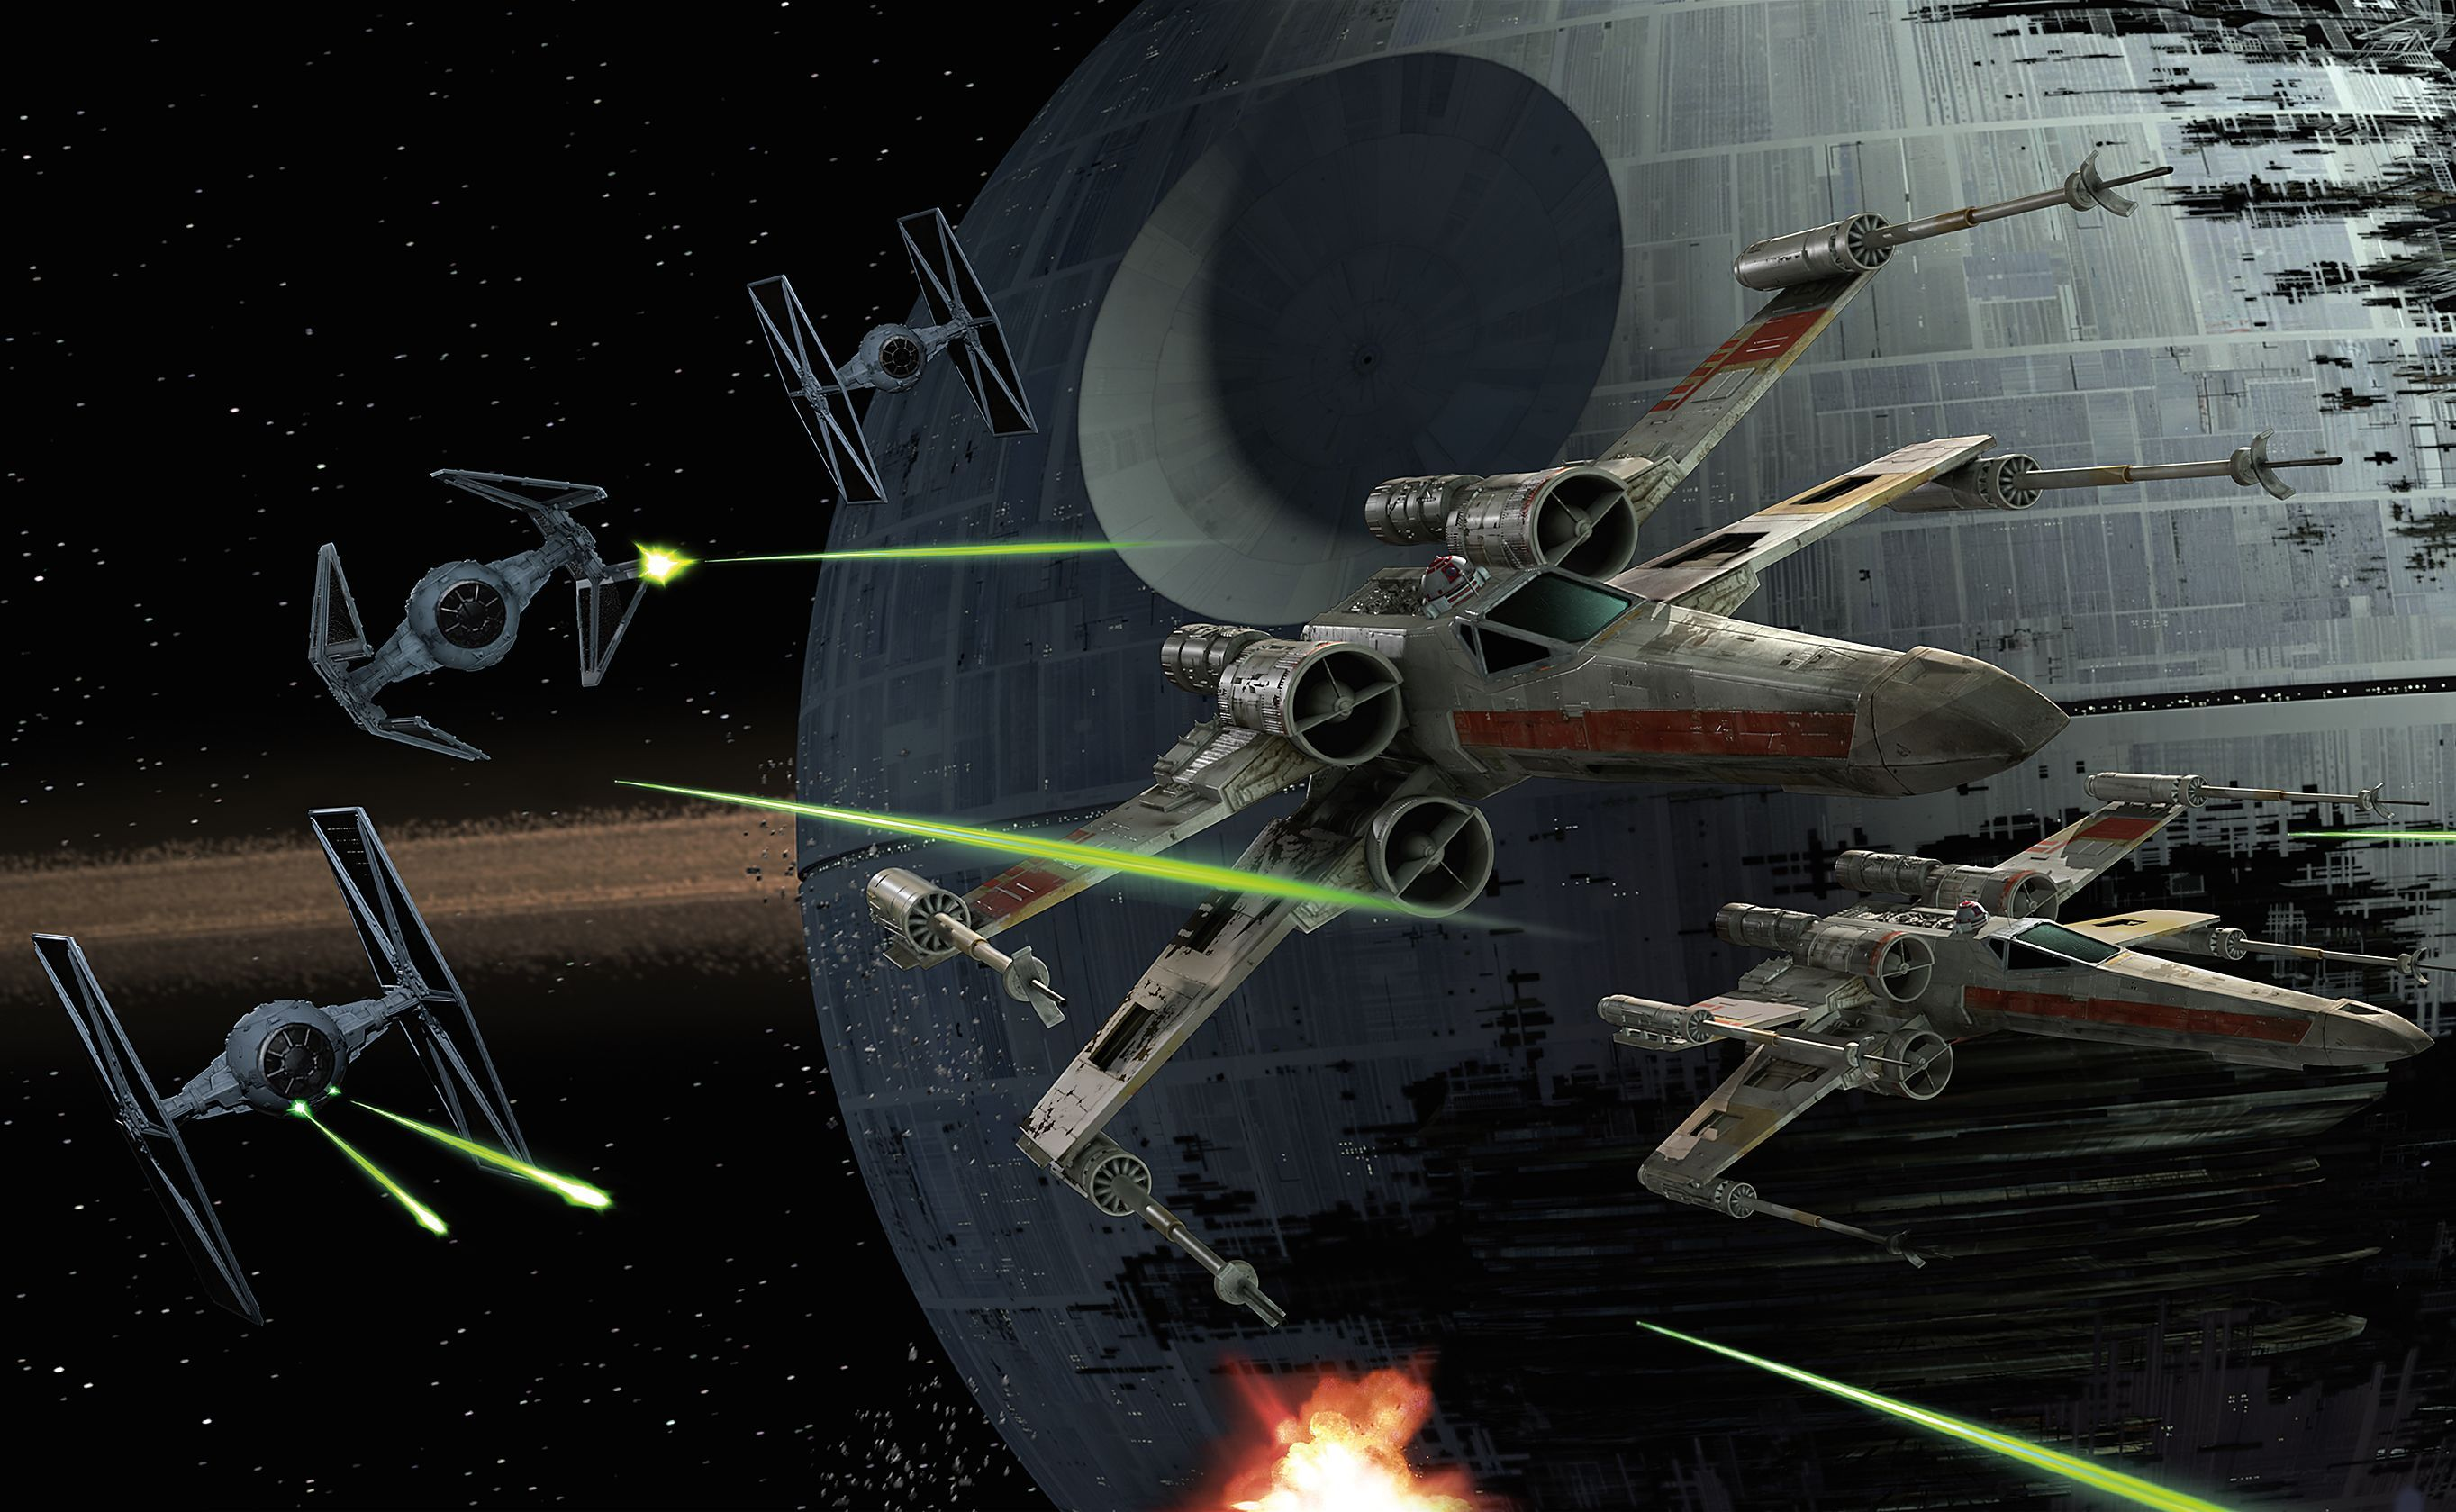 official star wars space battles - Google Search | Best ...